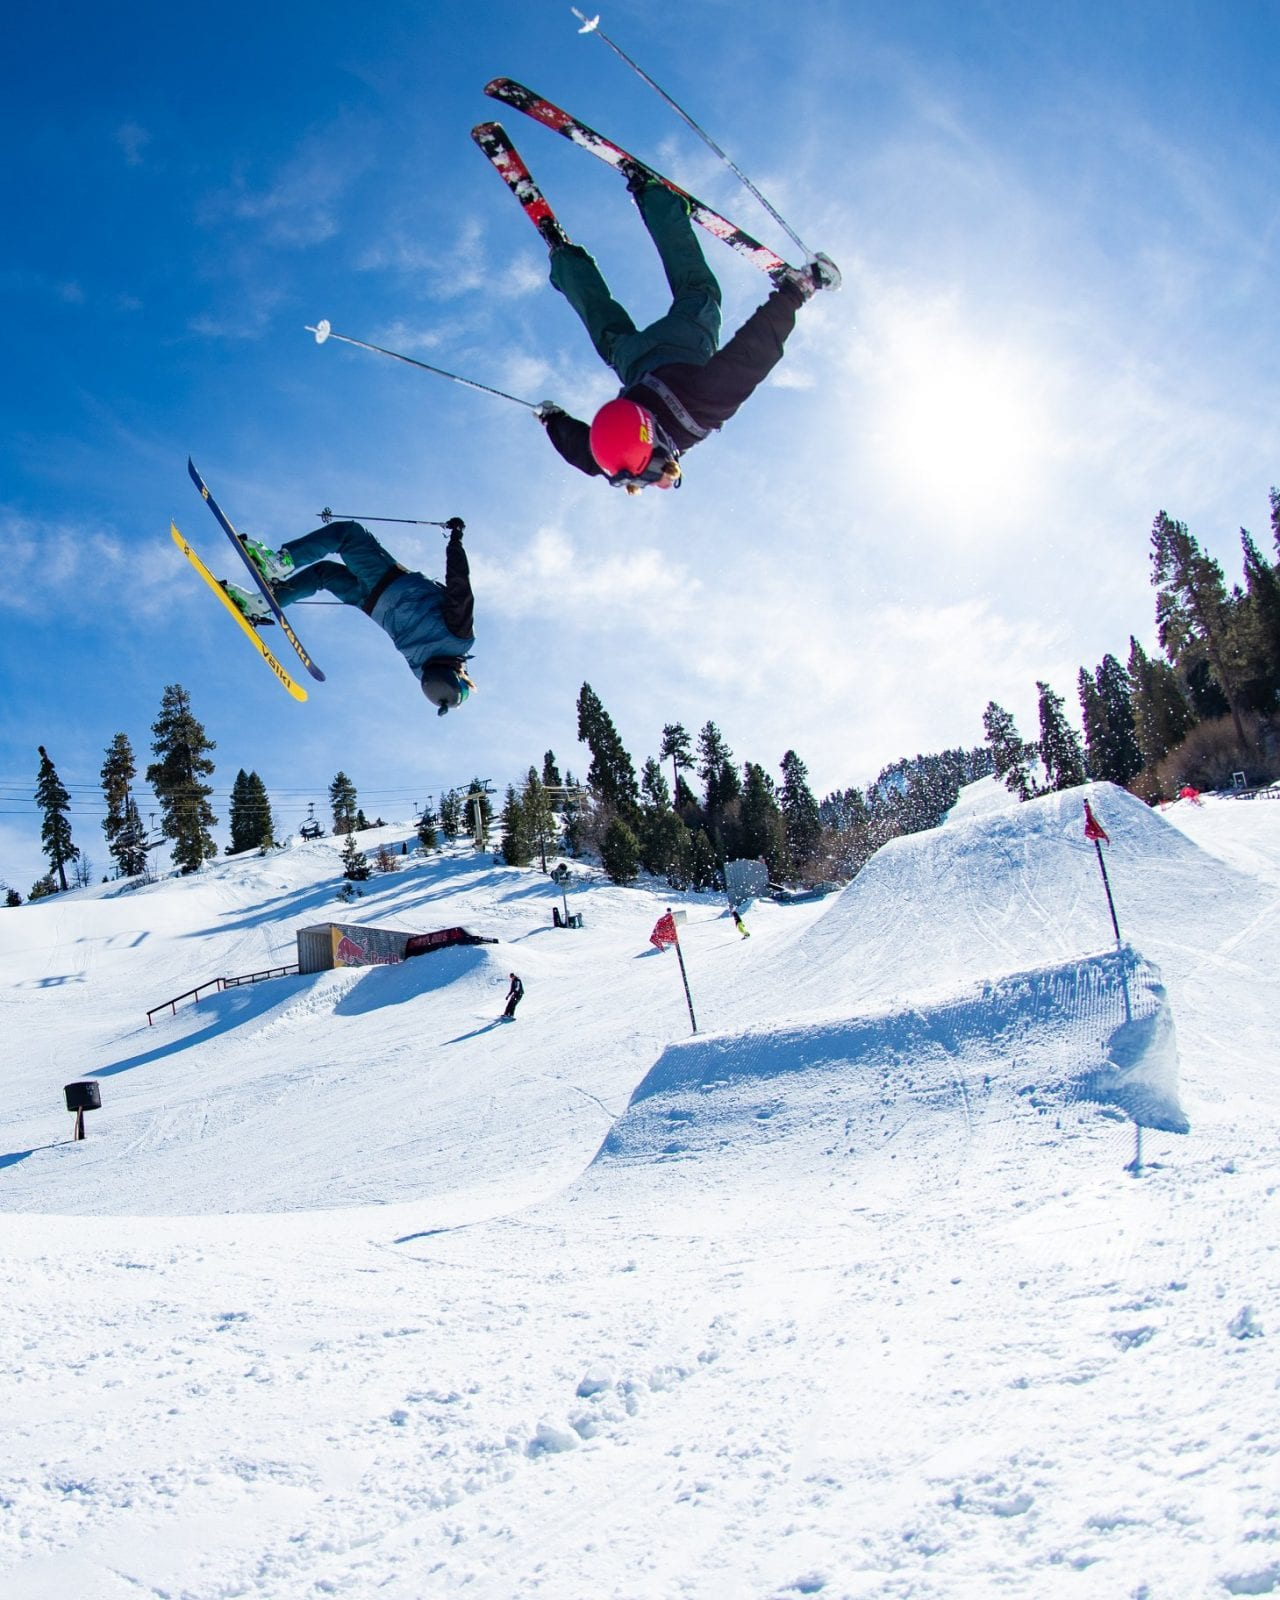 Image of two skiers doing a backflip off a ramp at Snow Summit Ski Resort in California